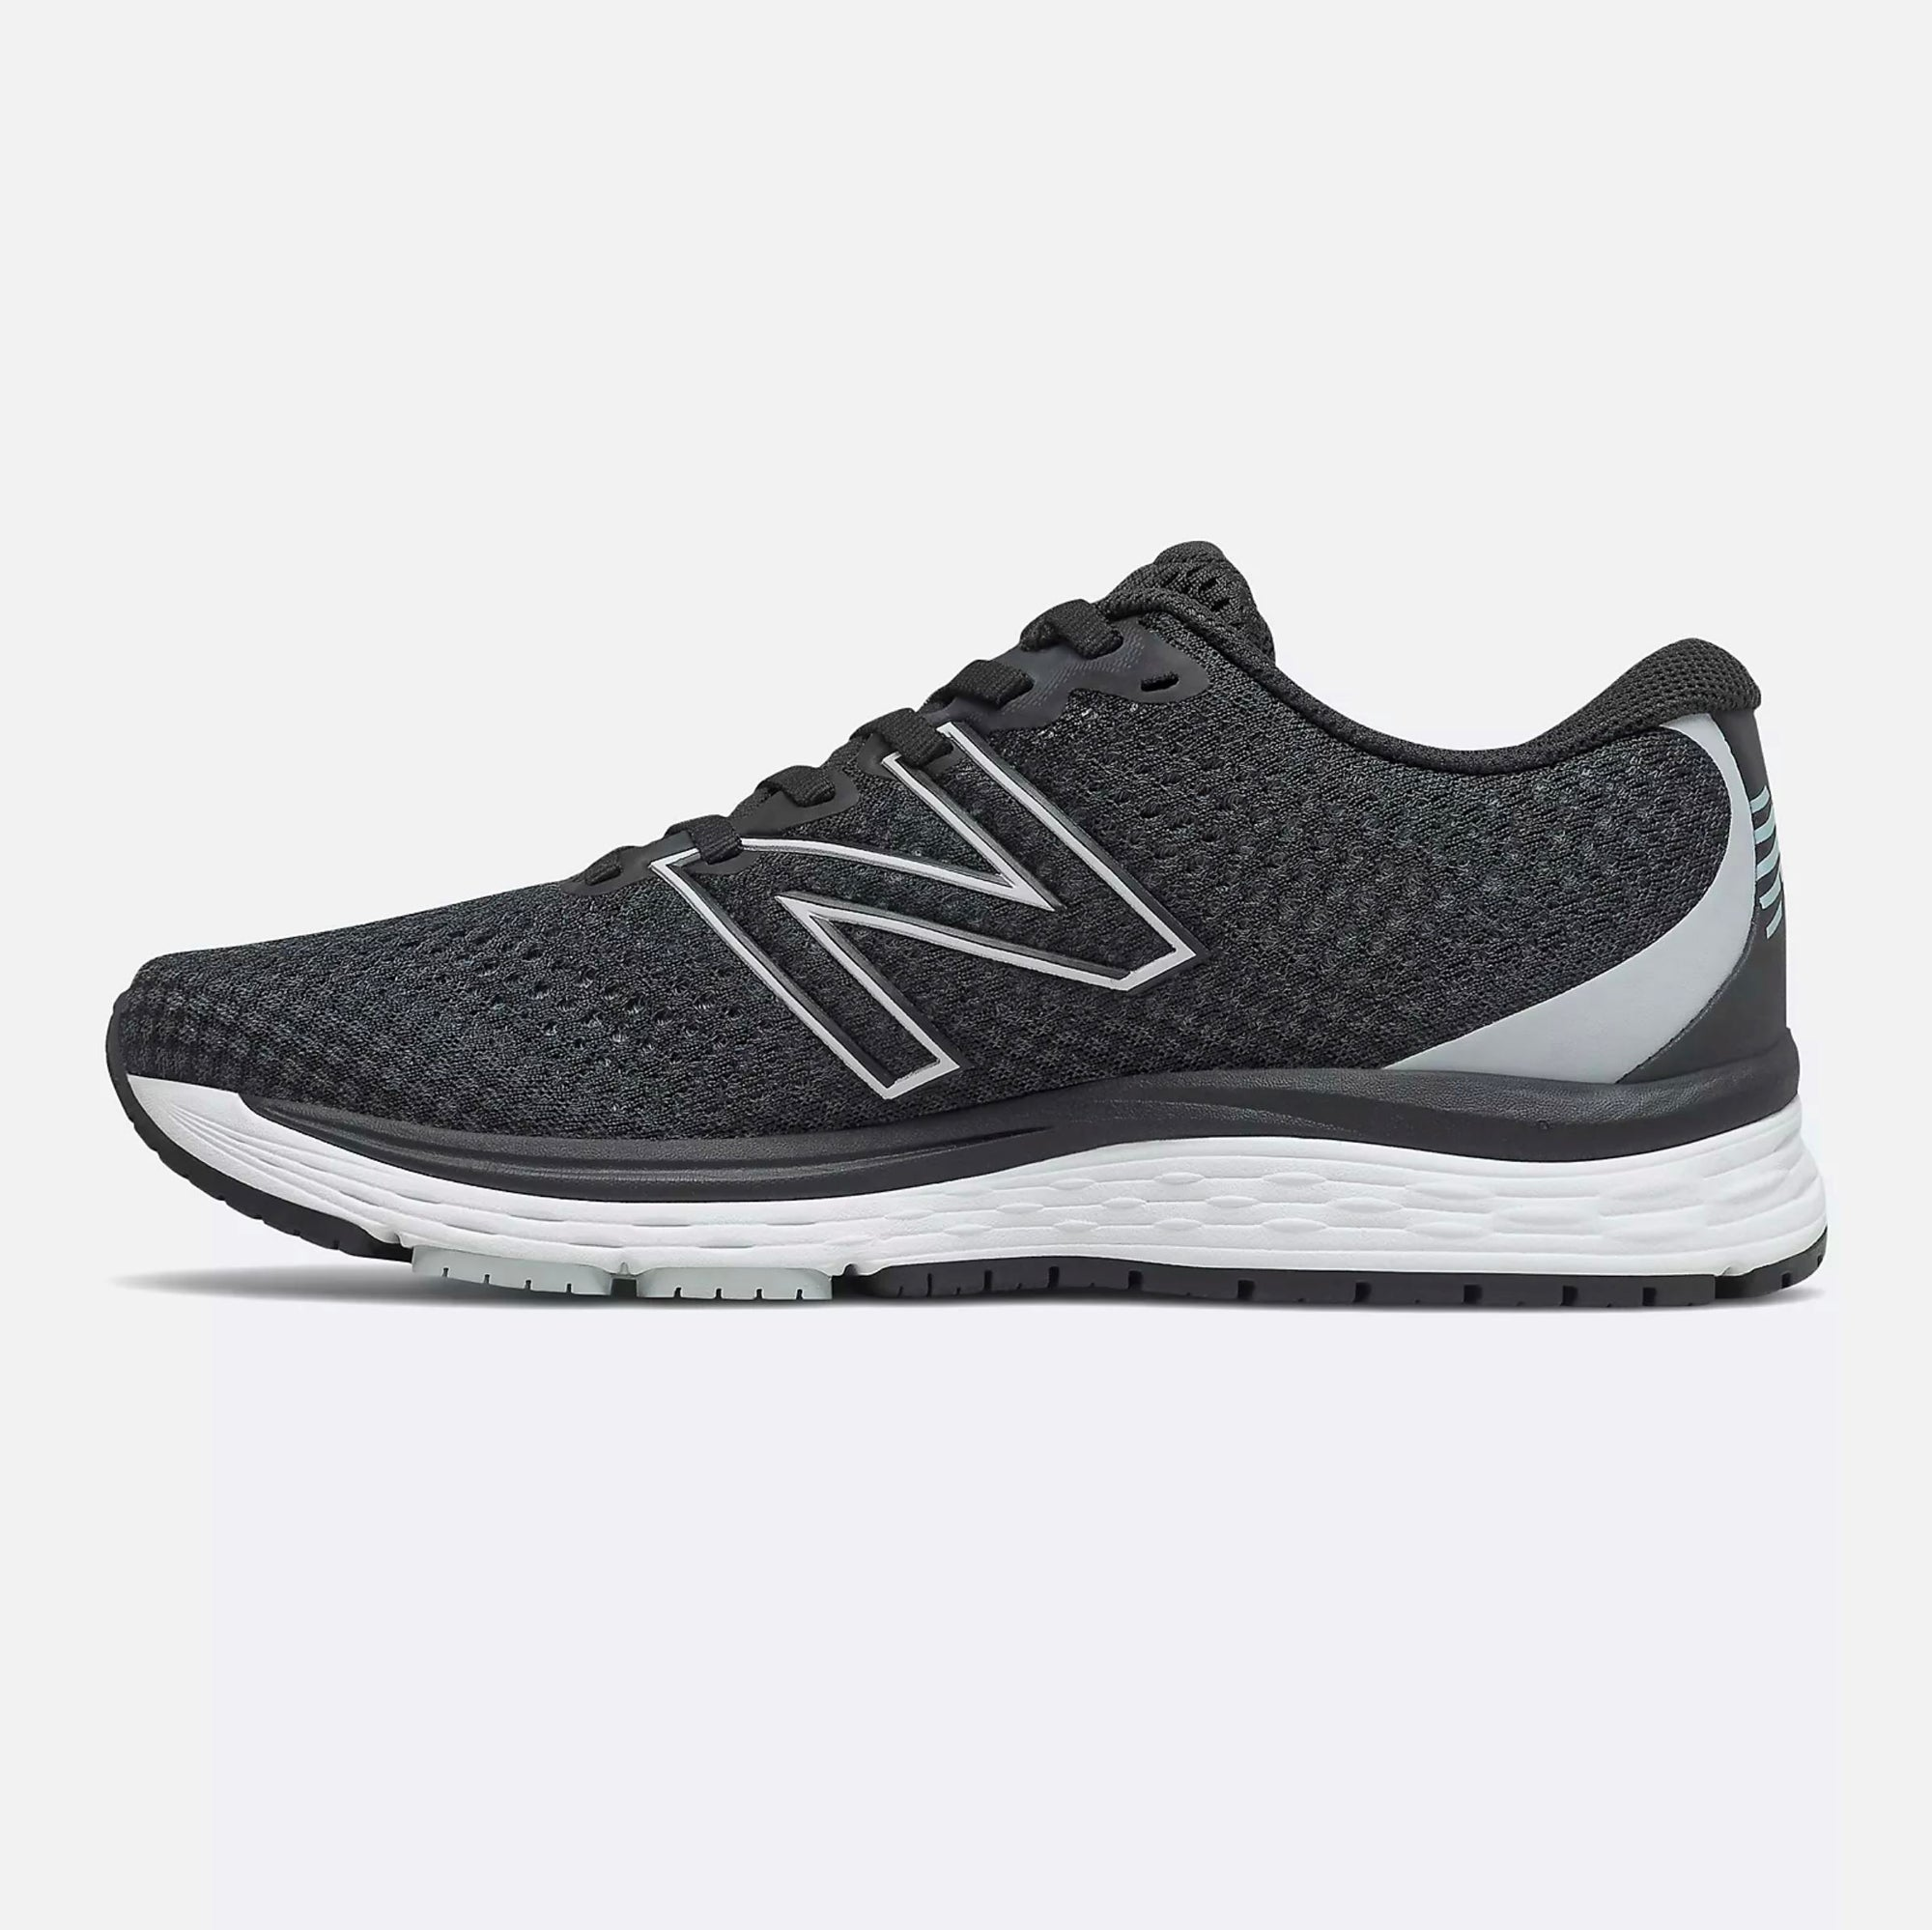 New Balance Women's Solvi v3 Running Shoe - Black/Light Cyclone SP-Footwear-Womens New Balance